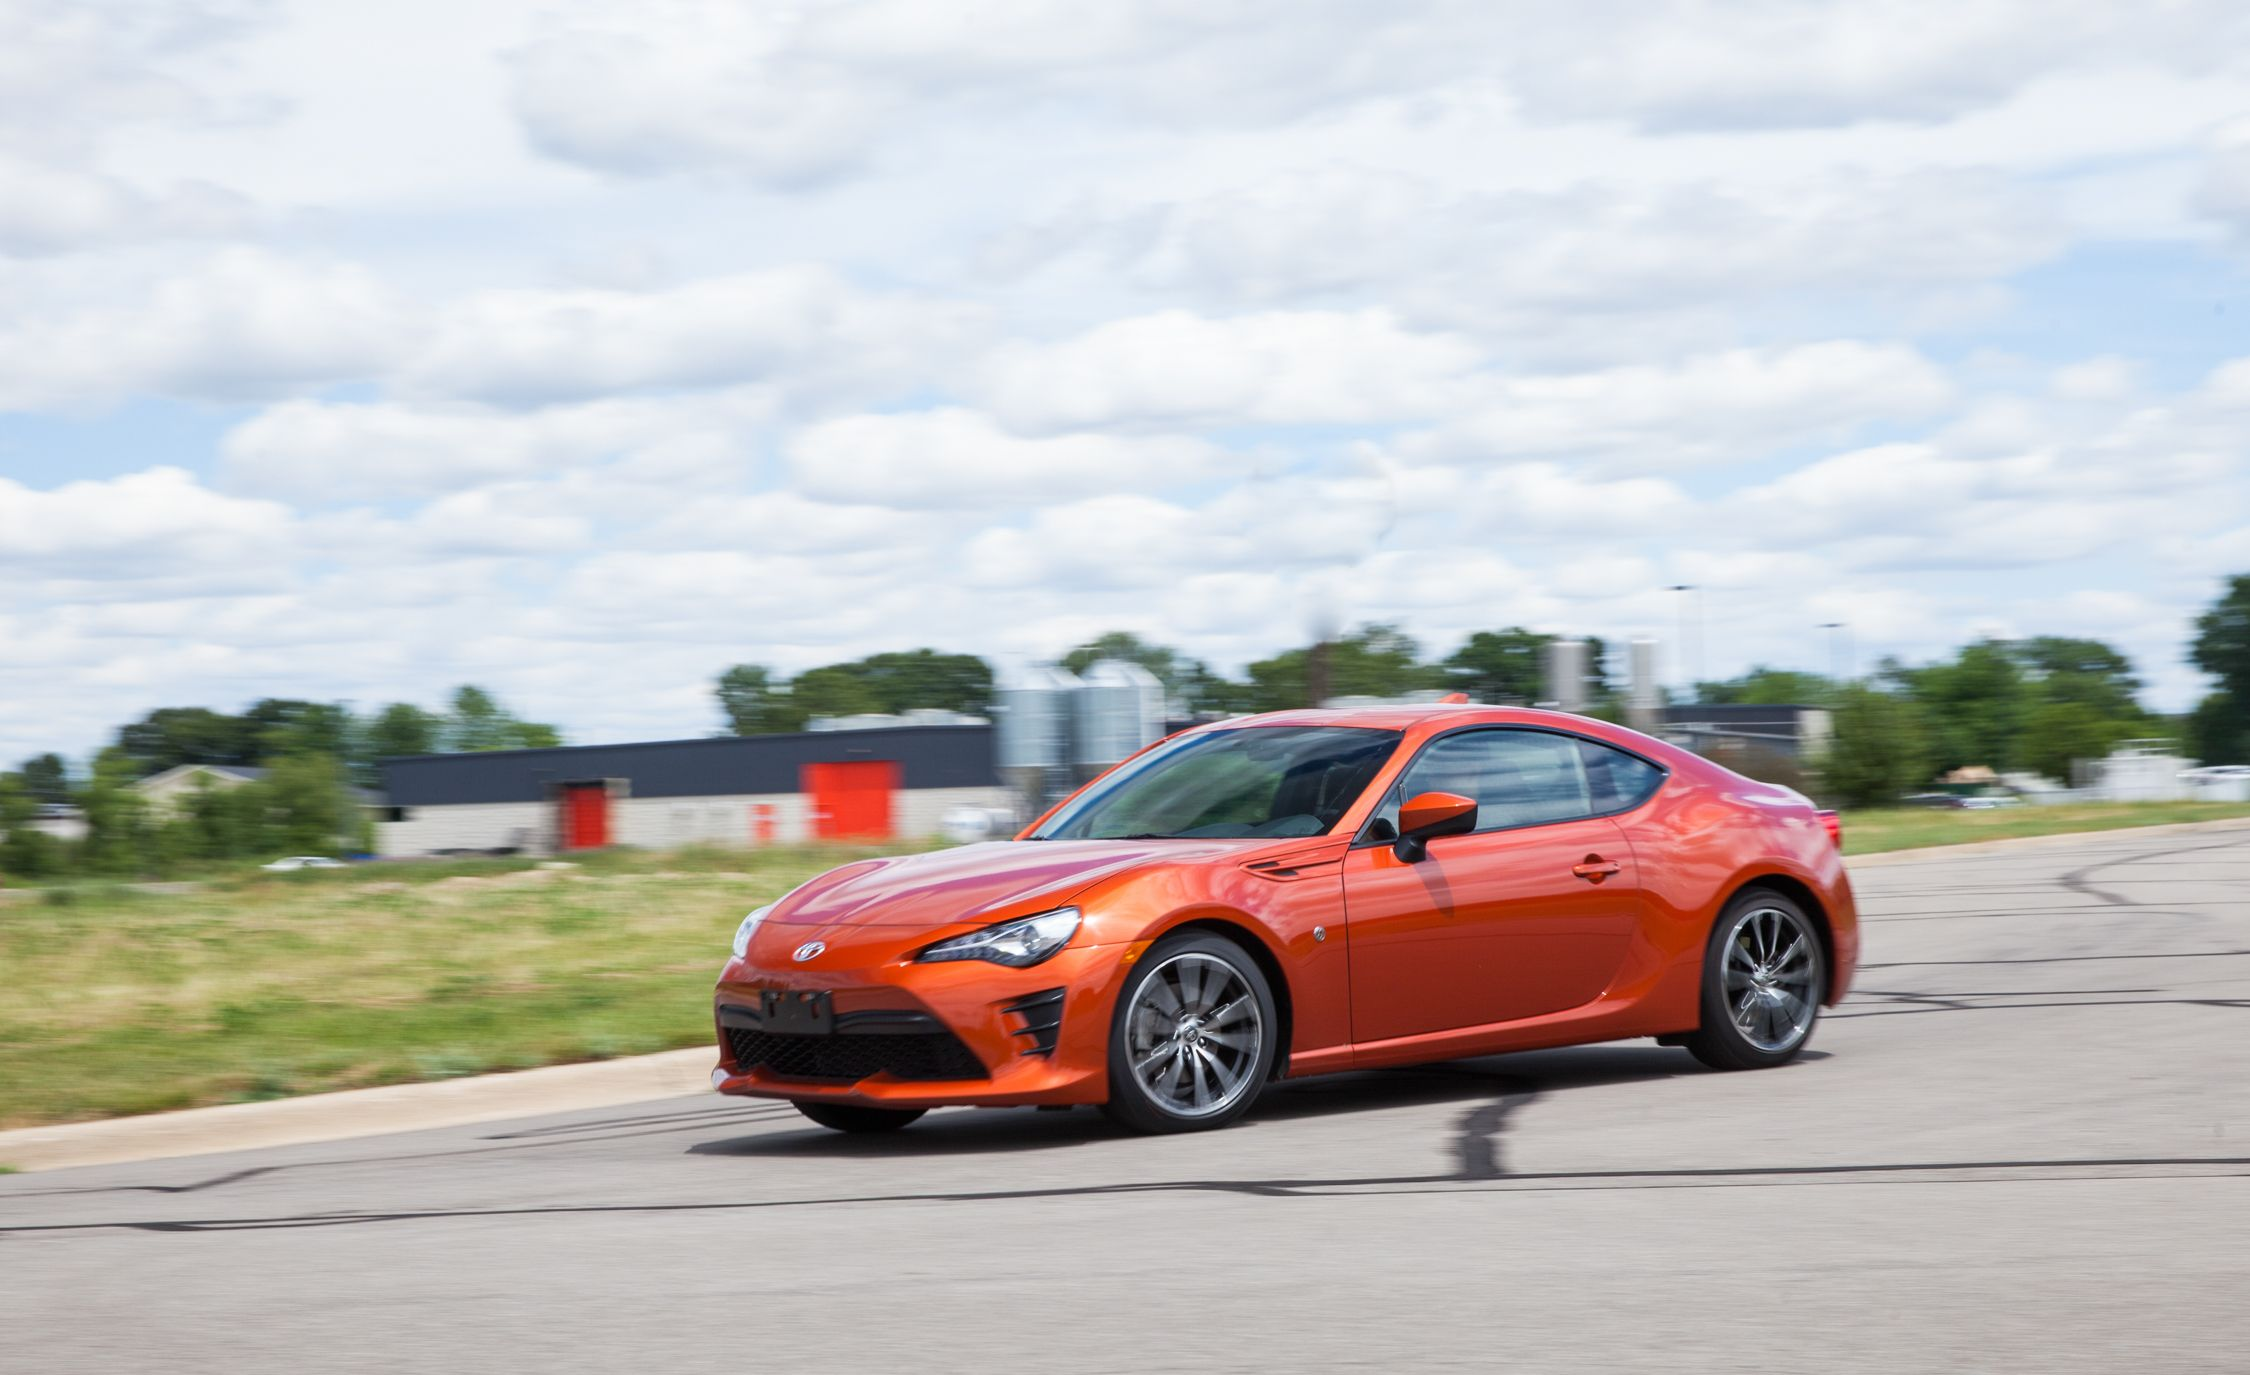 Toyota 86 Reviews | Toyota 86 Price, Photos, And Specs | Car And Driver